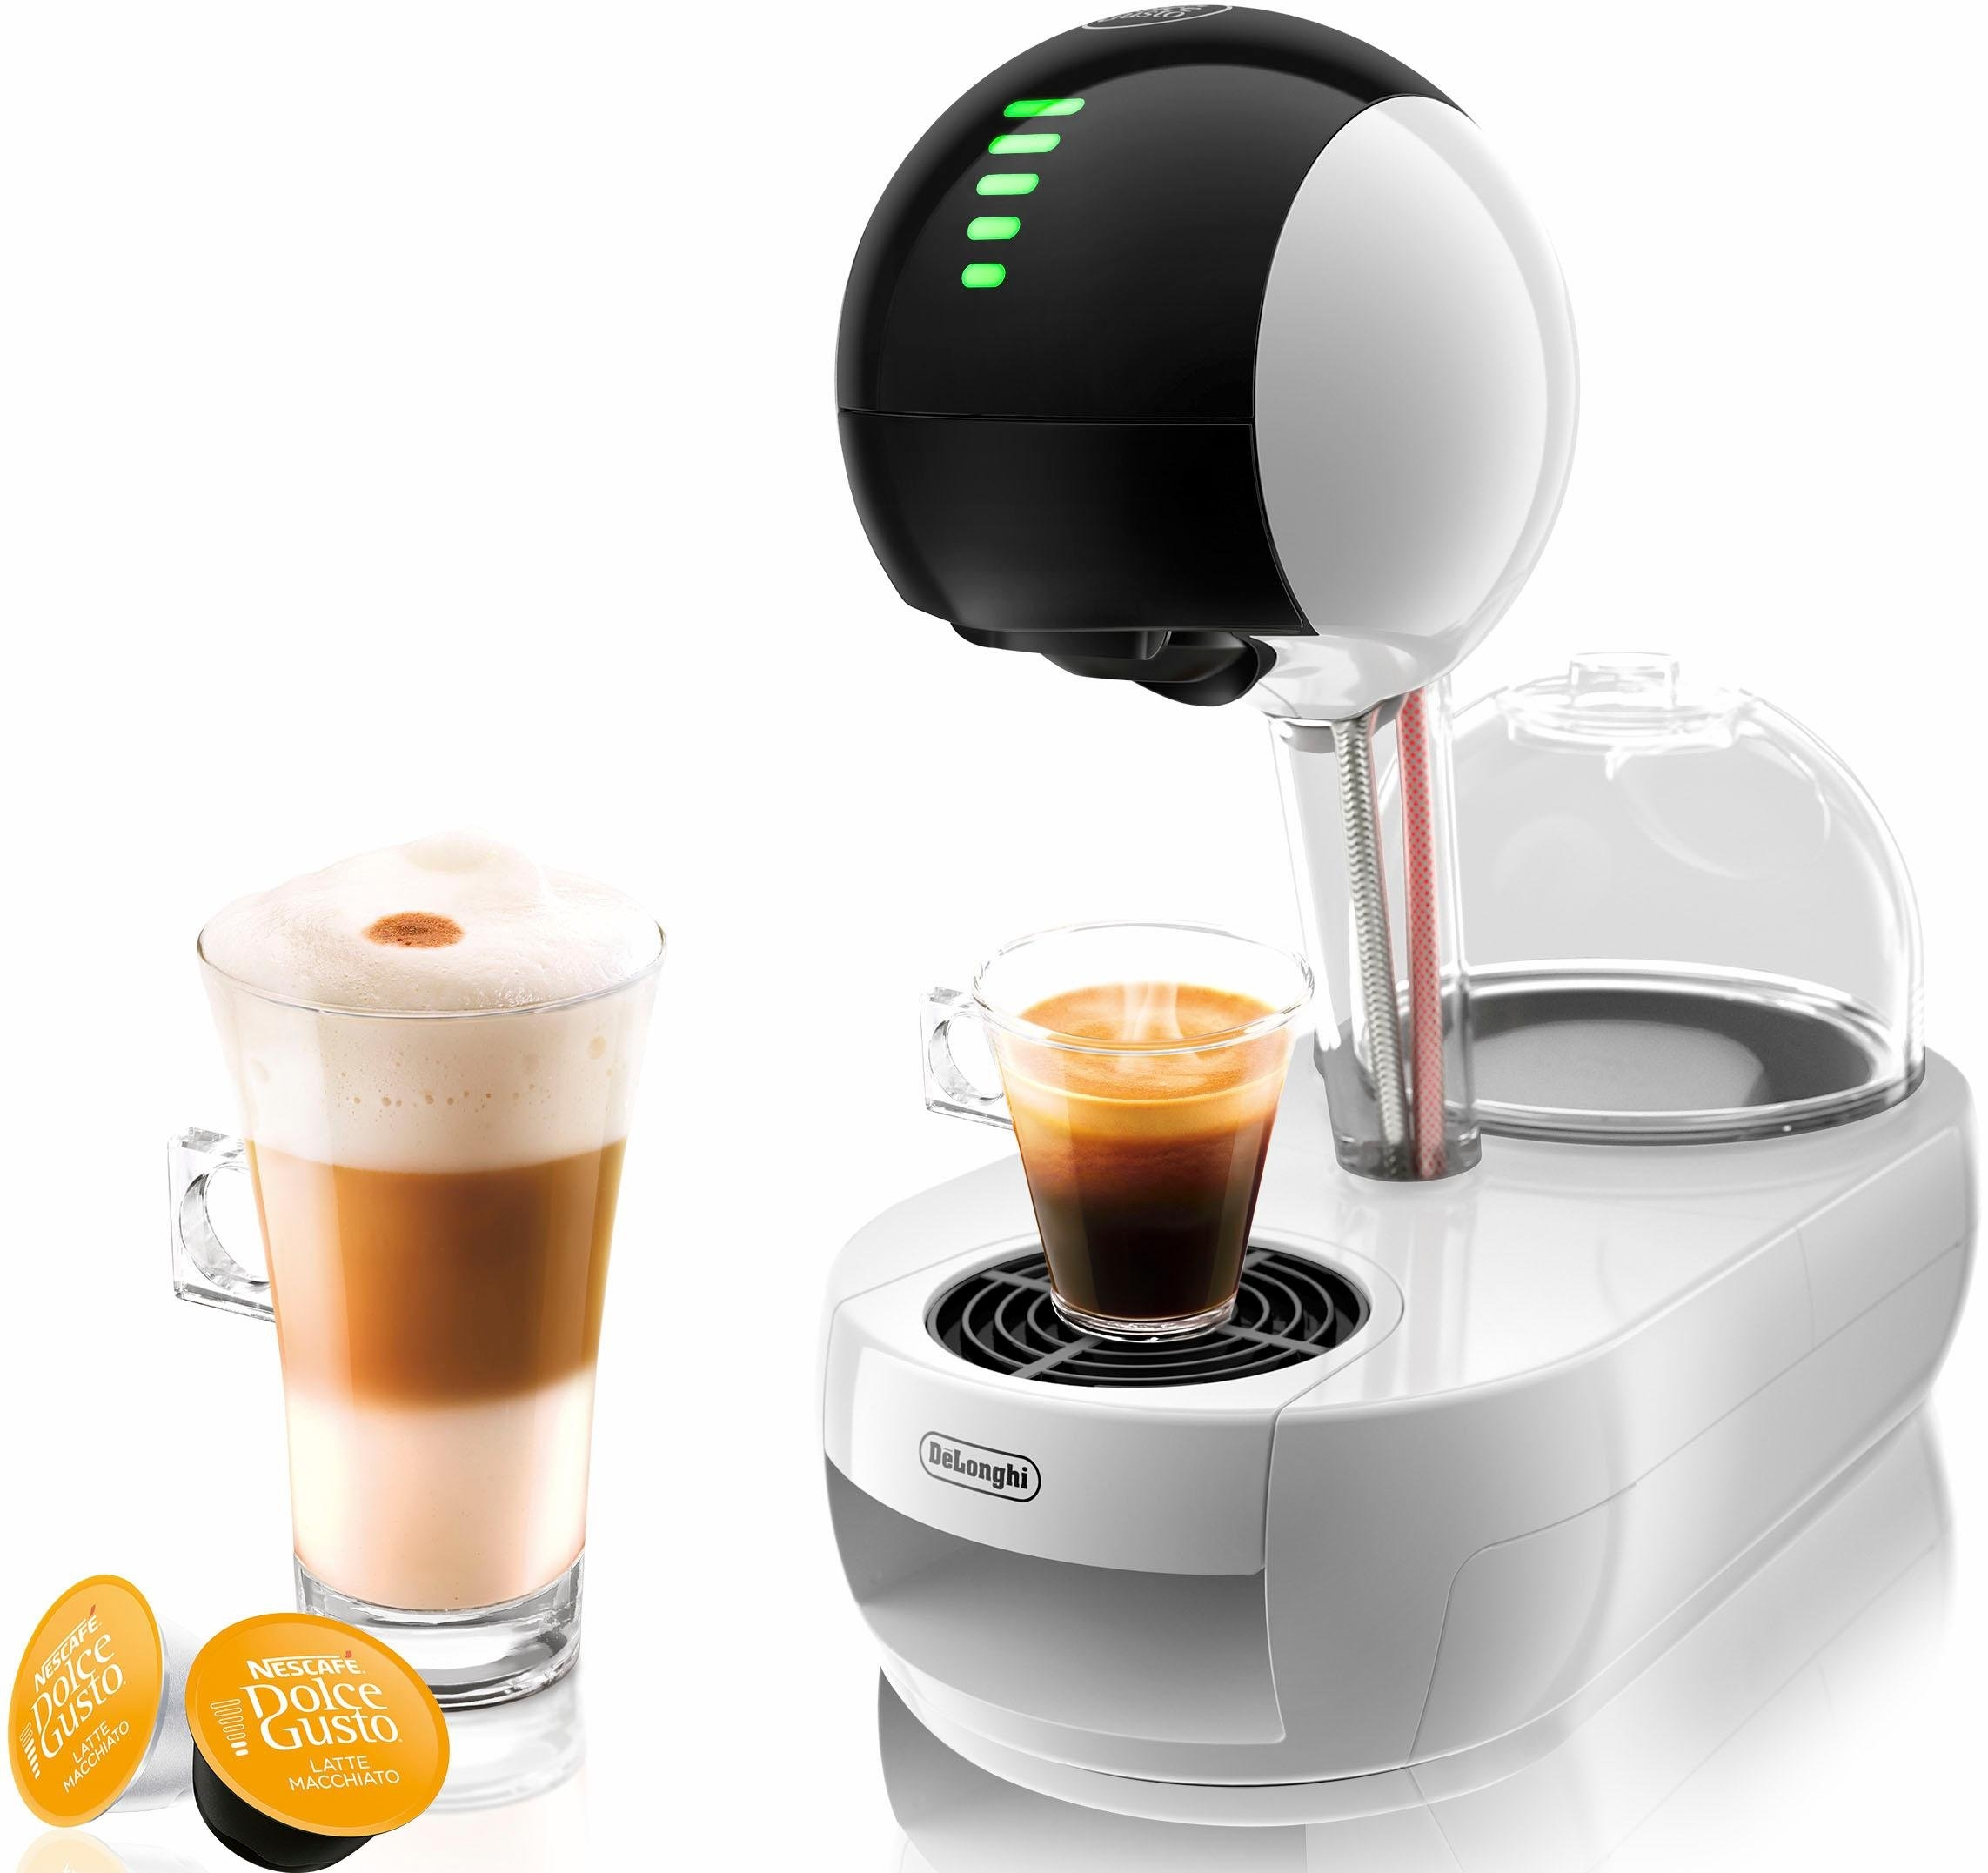 de 39 longhi nescaf dolce gusto koffiecapsulemachine. Black Bedroom Furniture Sets. Home Design Ideas